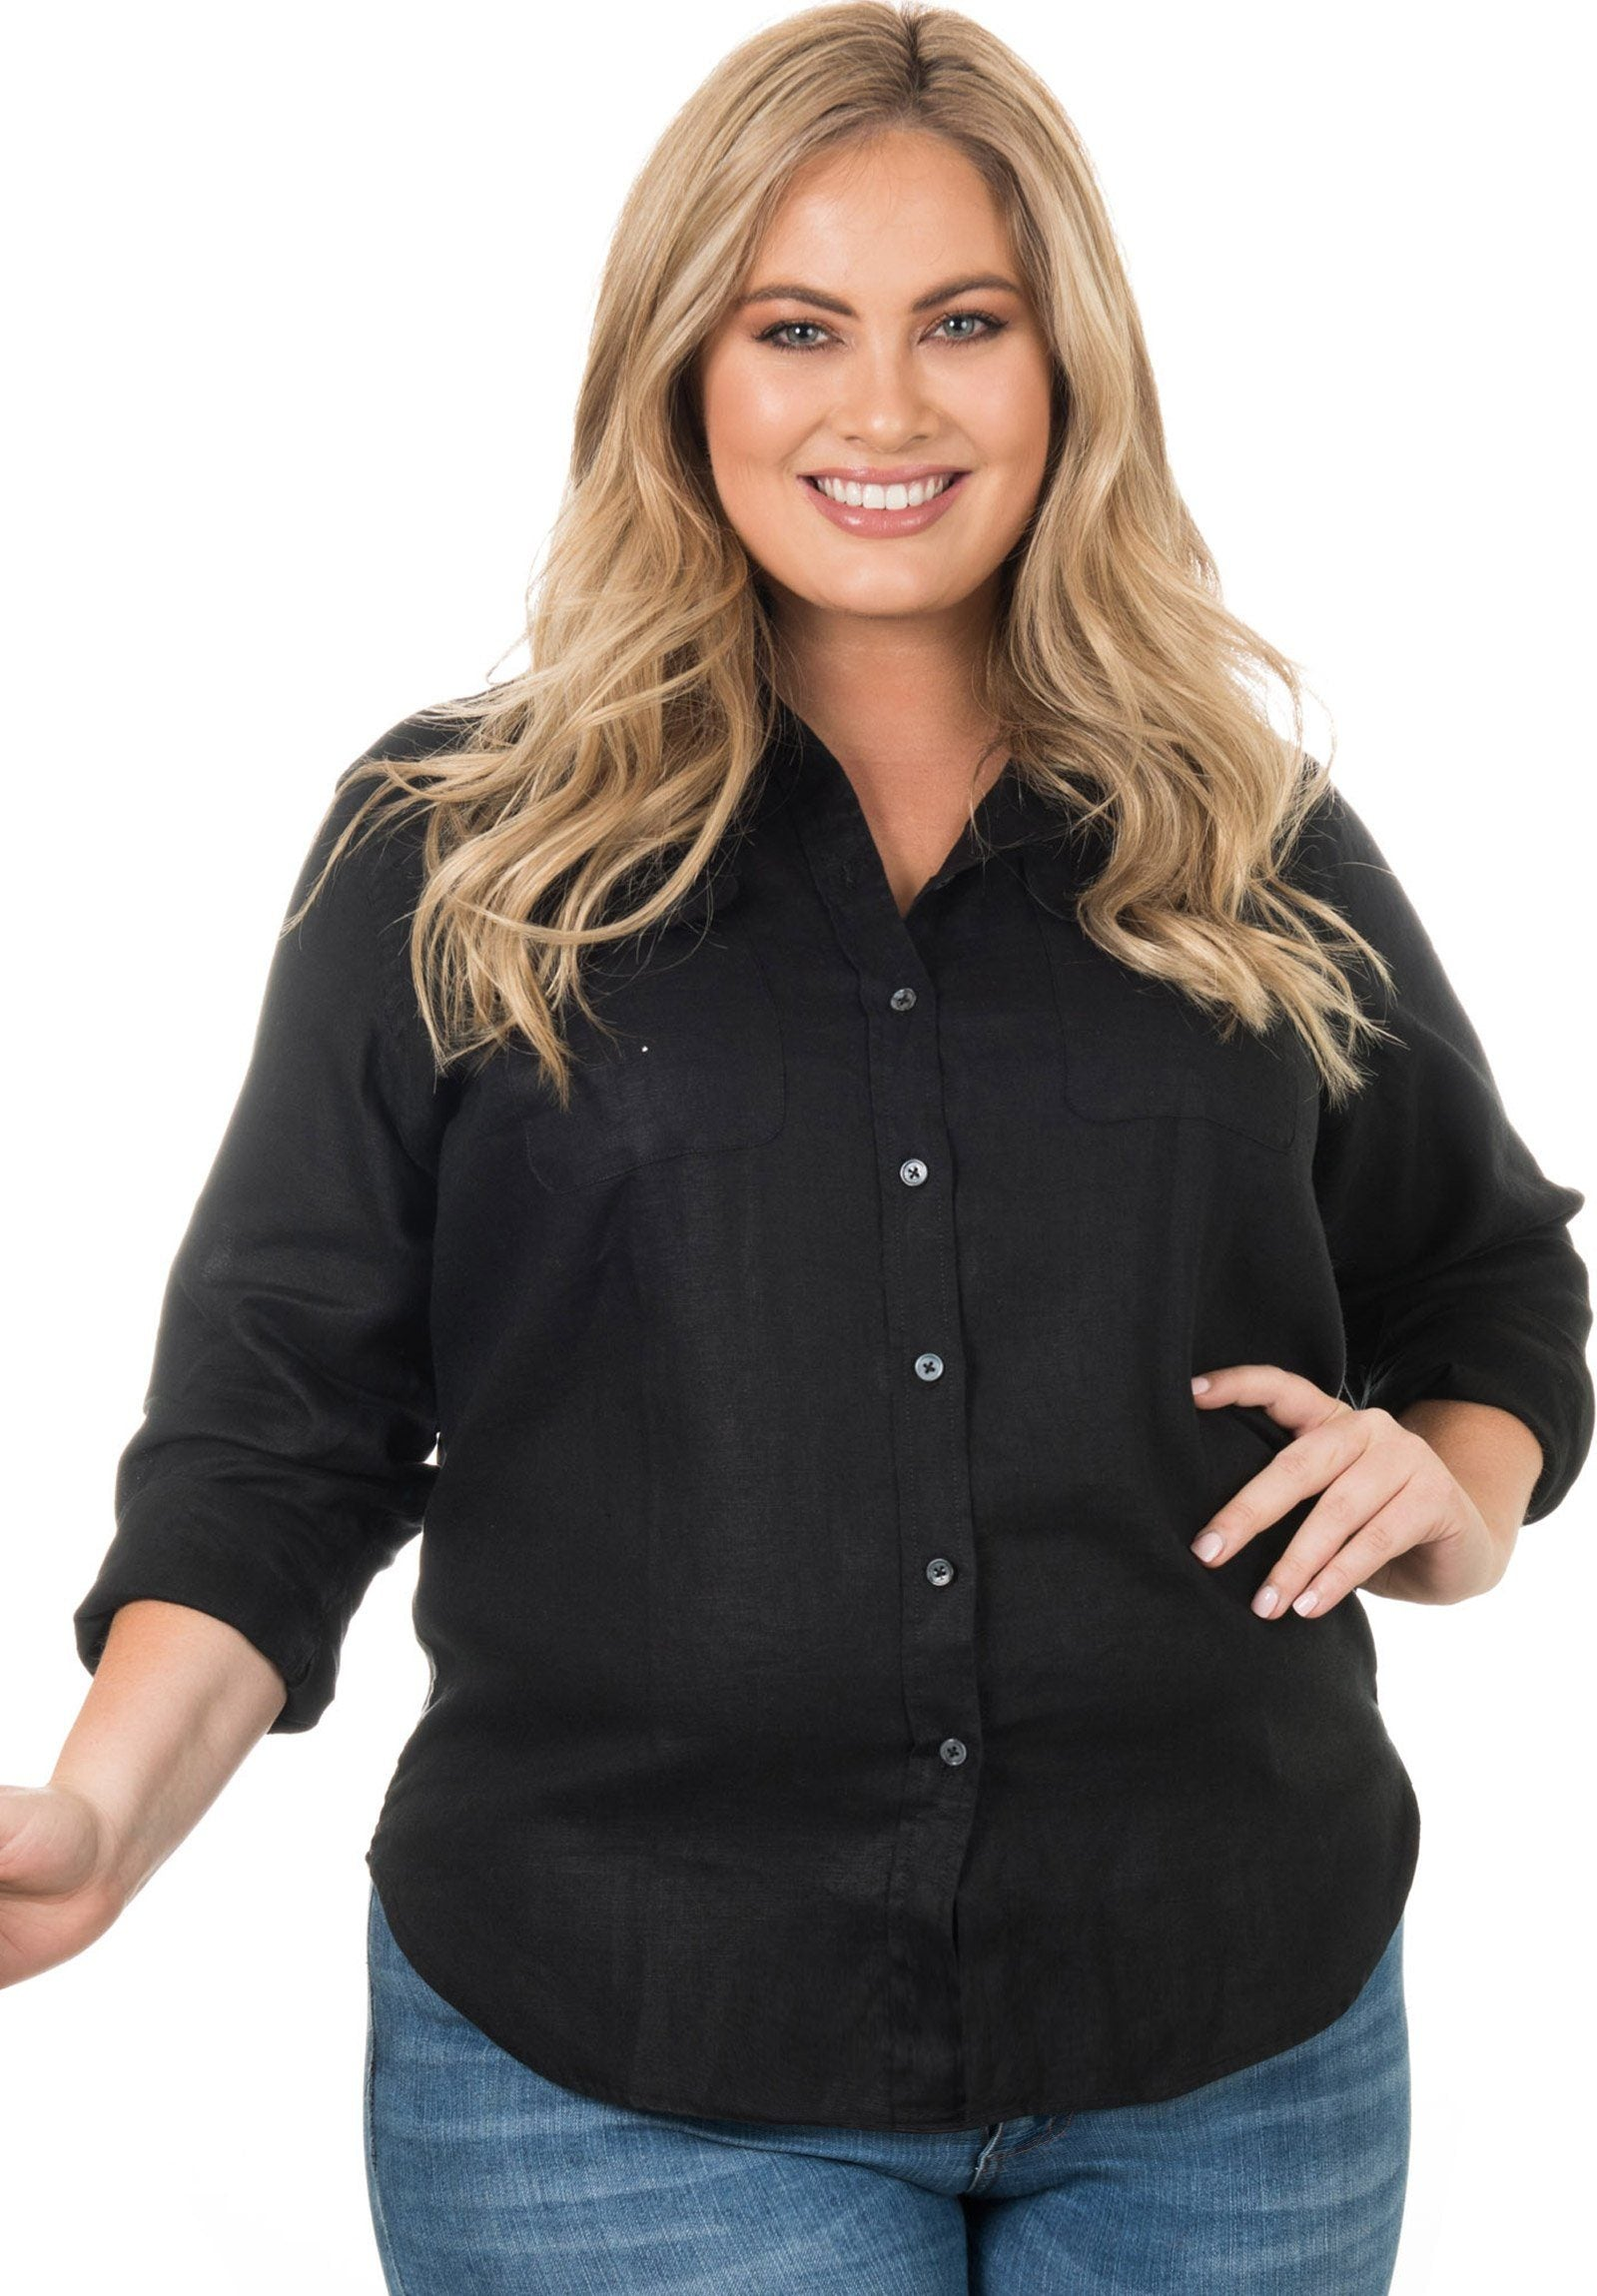 Lete Linen Black, Plus Size Cut Shirt with Pockets